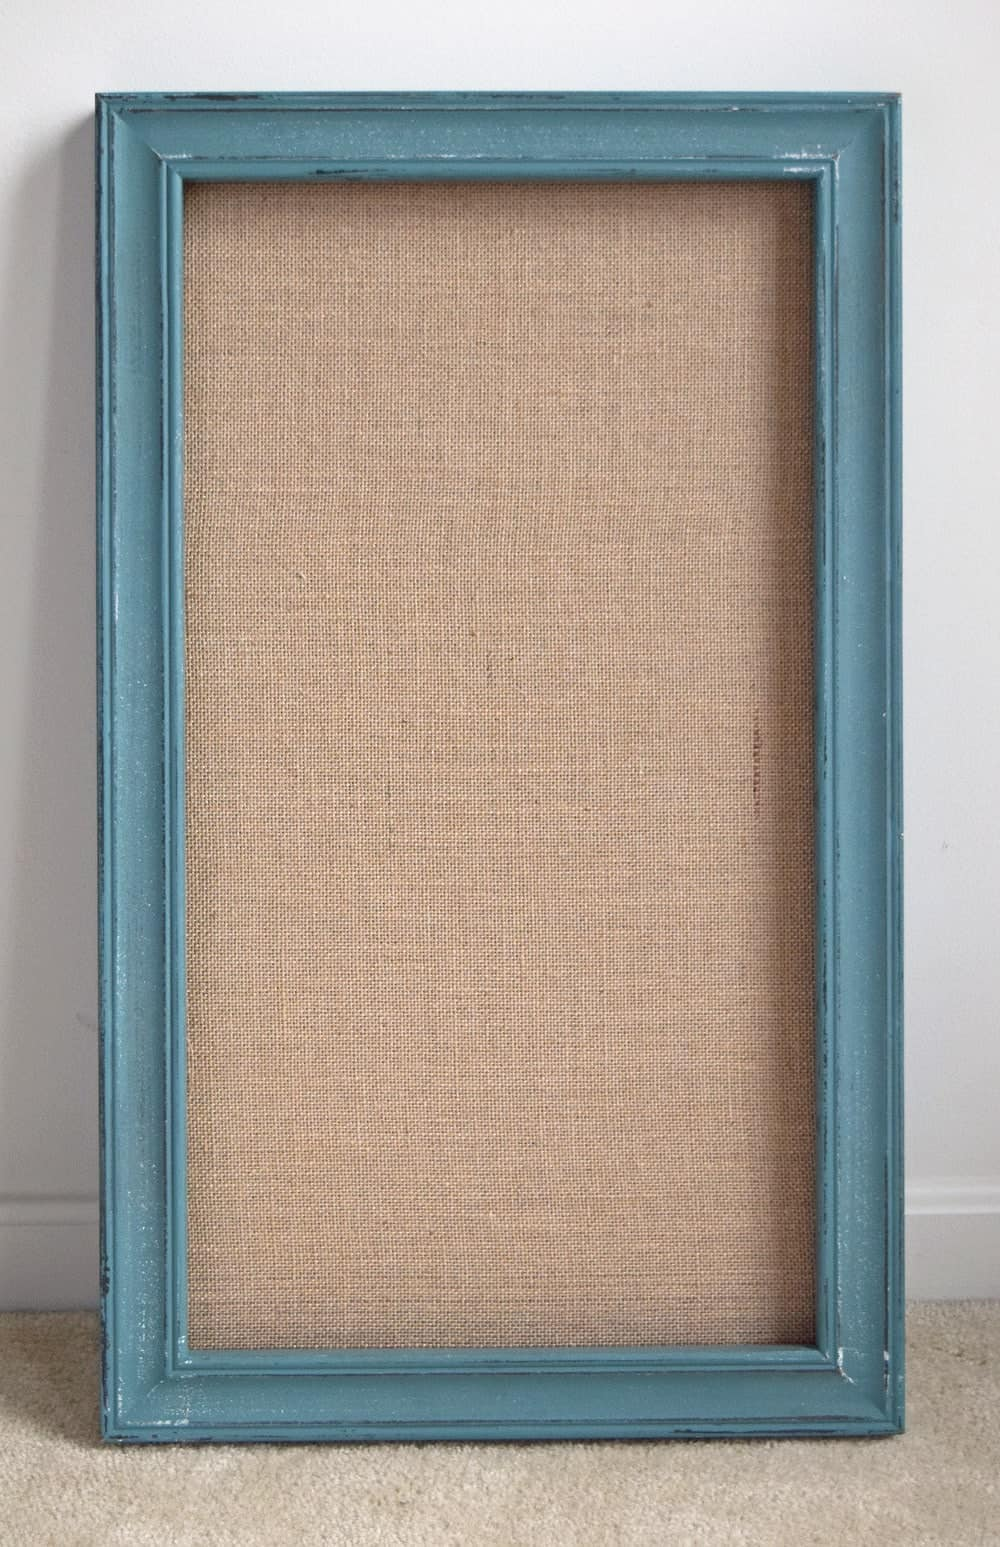 Turquoise painted rectangular frame with burlap backer board propped on white wall.